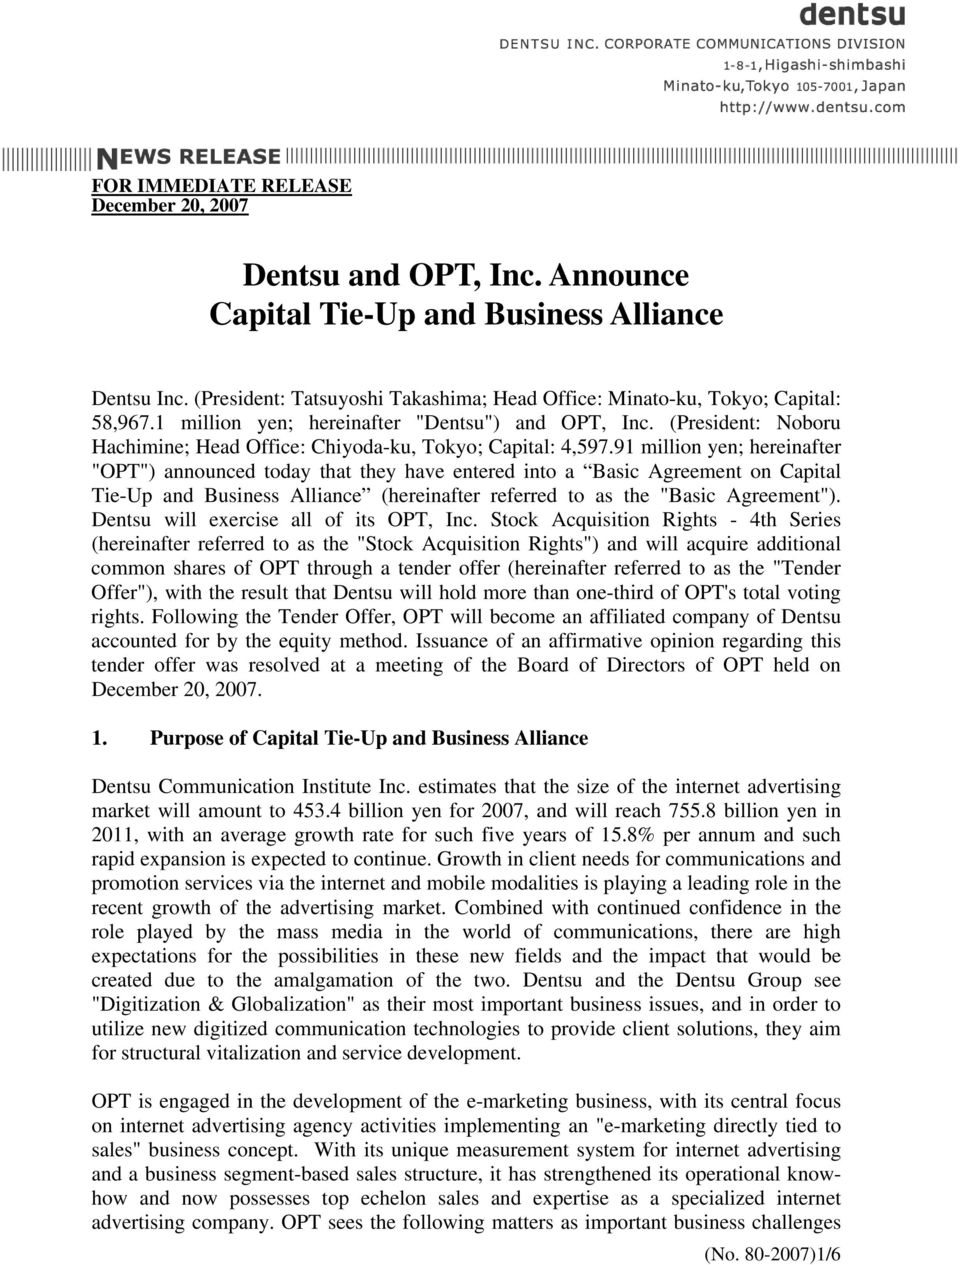 "91 million yen; hereinafter ""OPT"") announced today that they have entered into a Basic Agreement on Capital Tie-Up and Business Alliance (hereinafter referred to as the ""Basic Agreement"")."